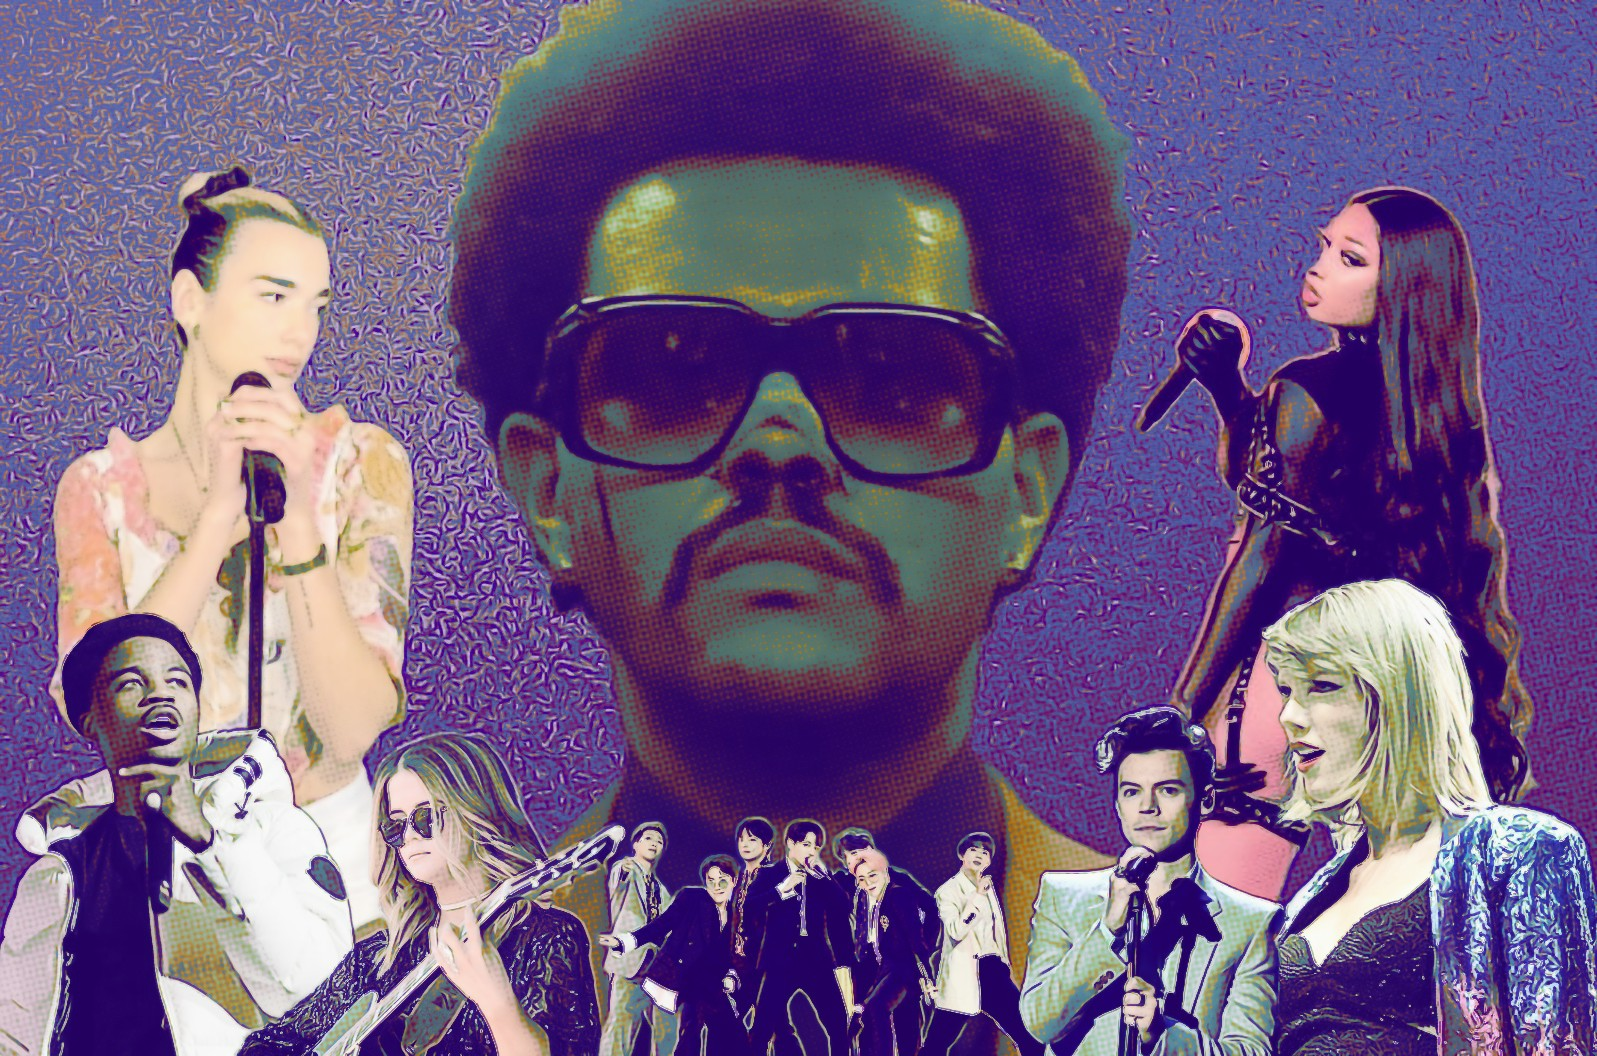 sigowqzbf1gism https www cleveland com entertainment 2020 11 grammys 2021 predictions the weeknd definitely bts maybe html